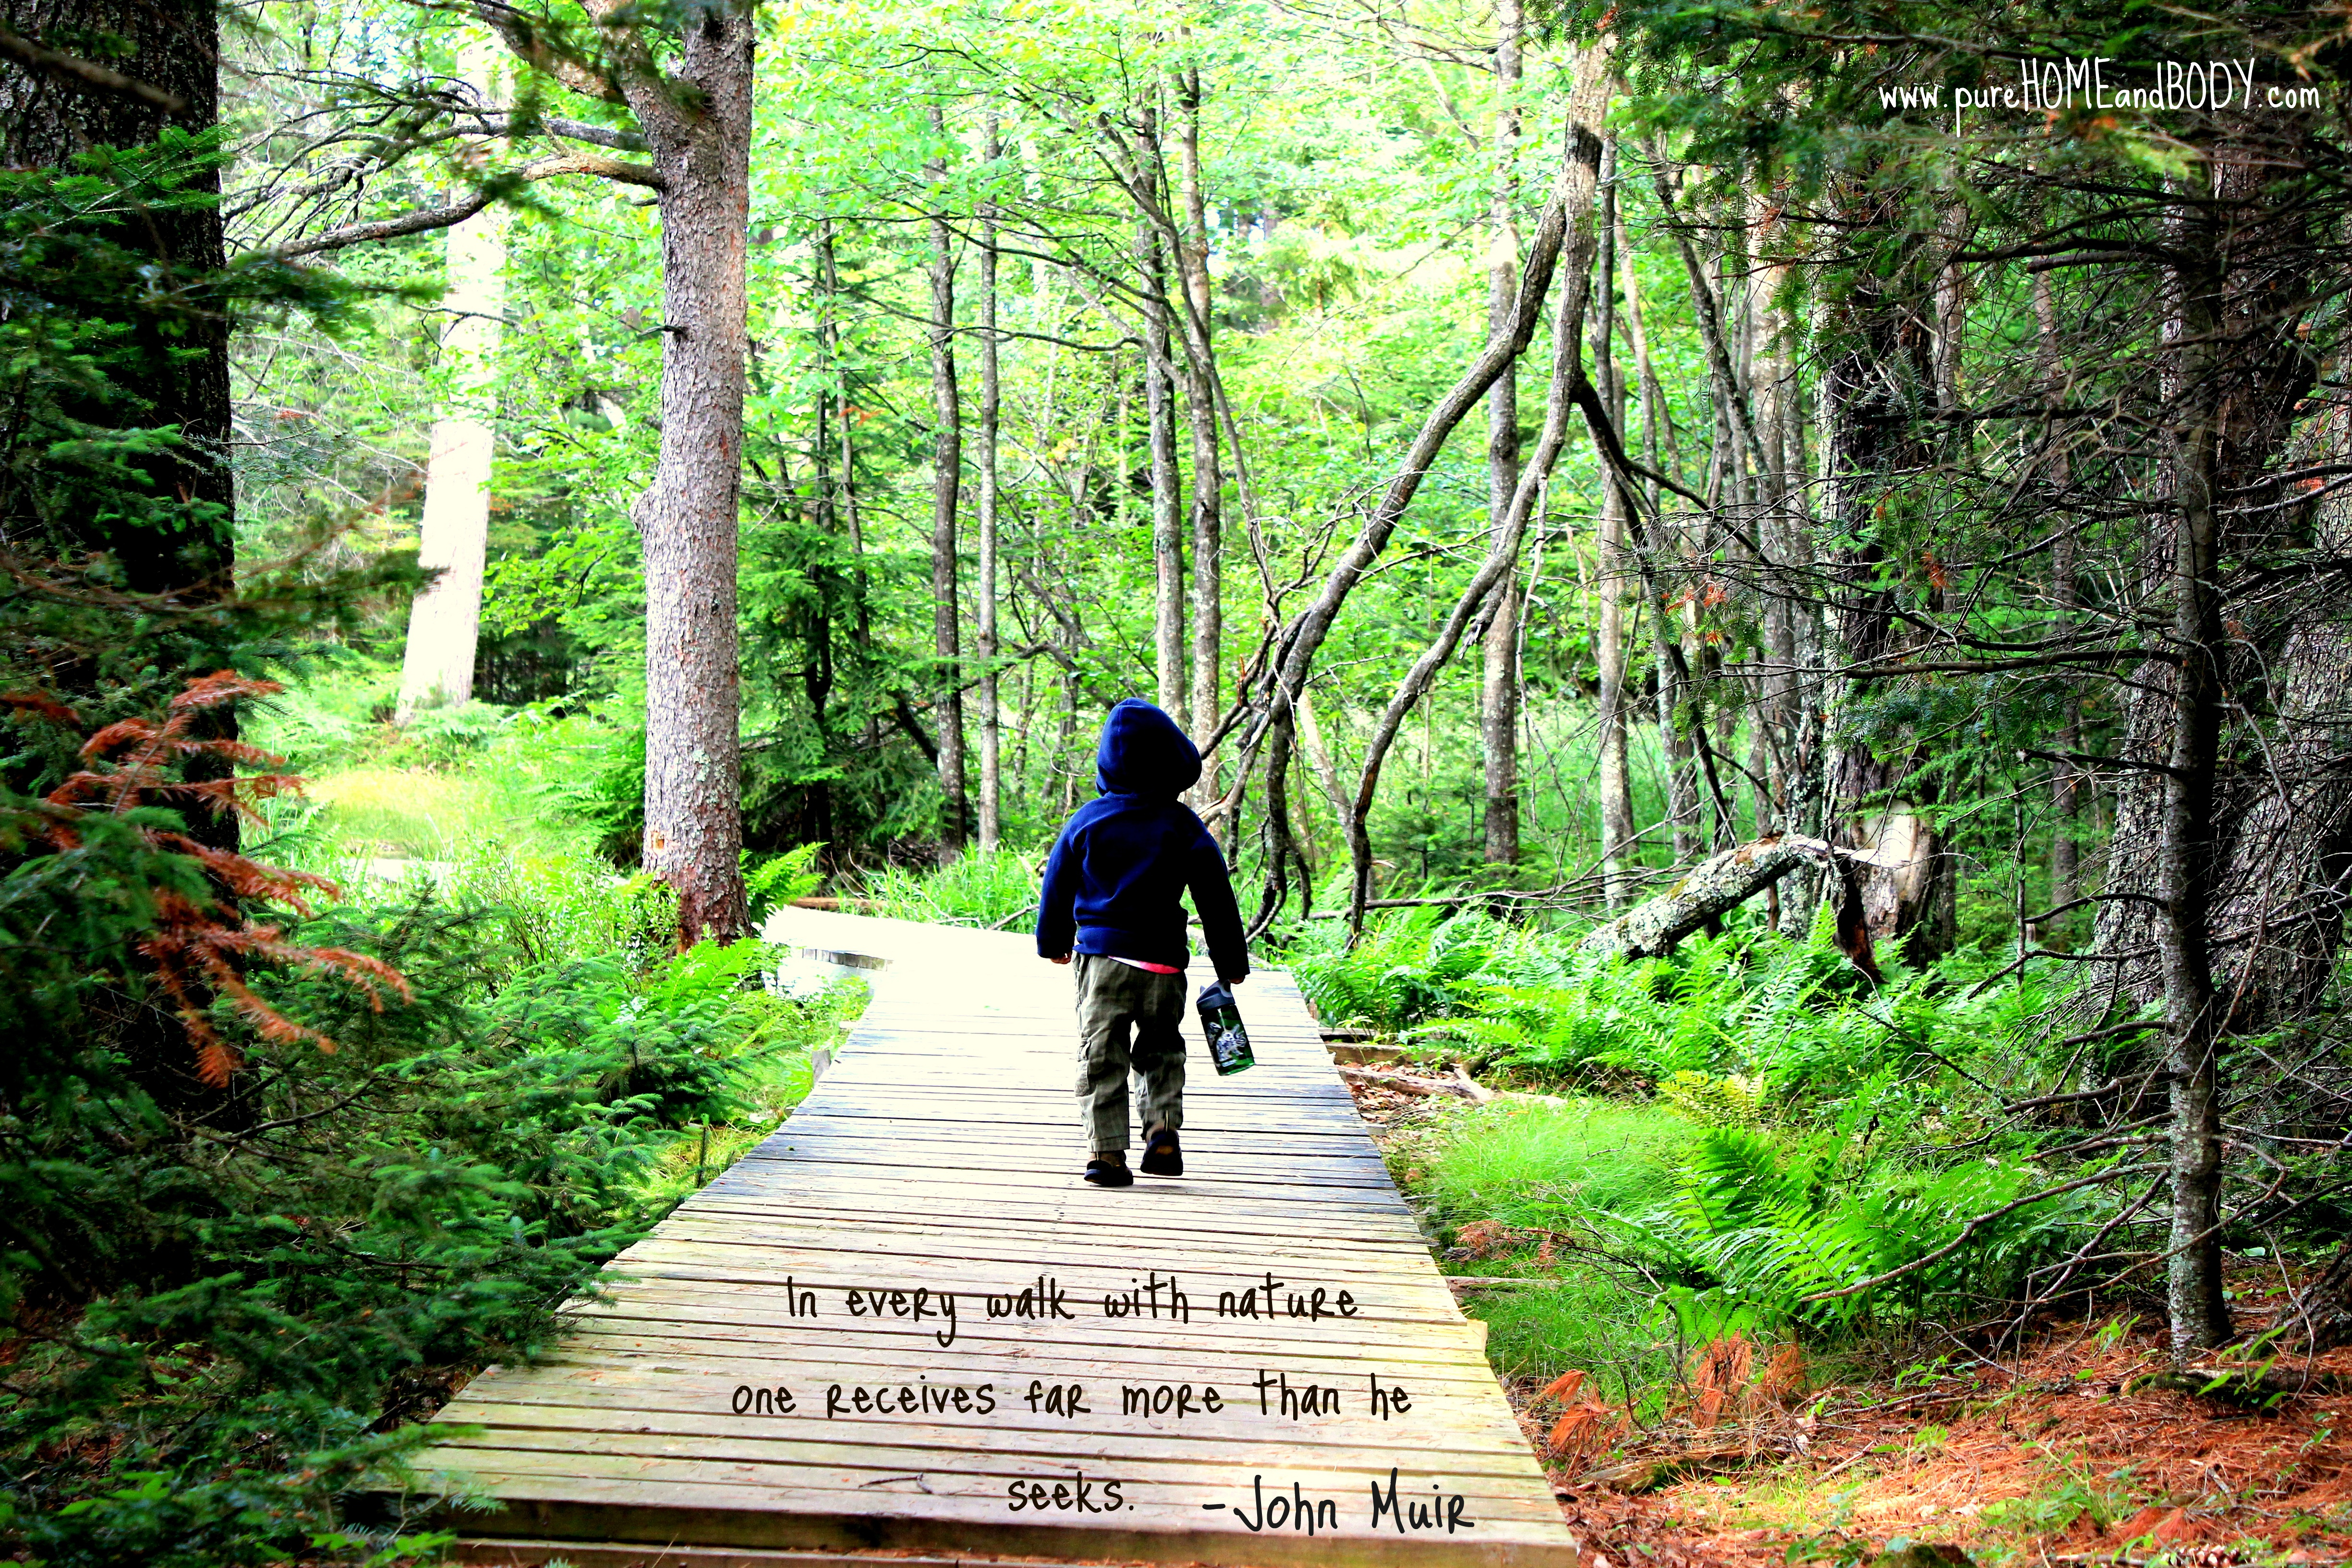 John Muir Quote Pure Home And Body Llc